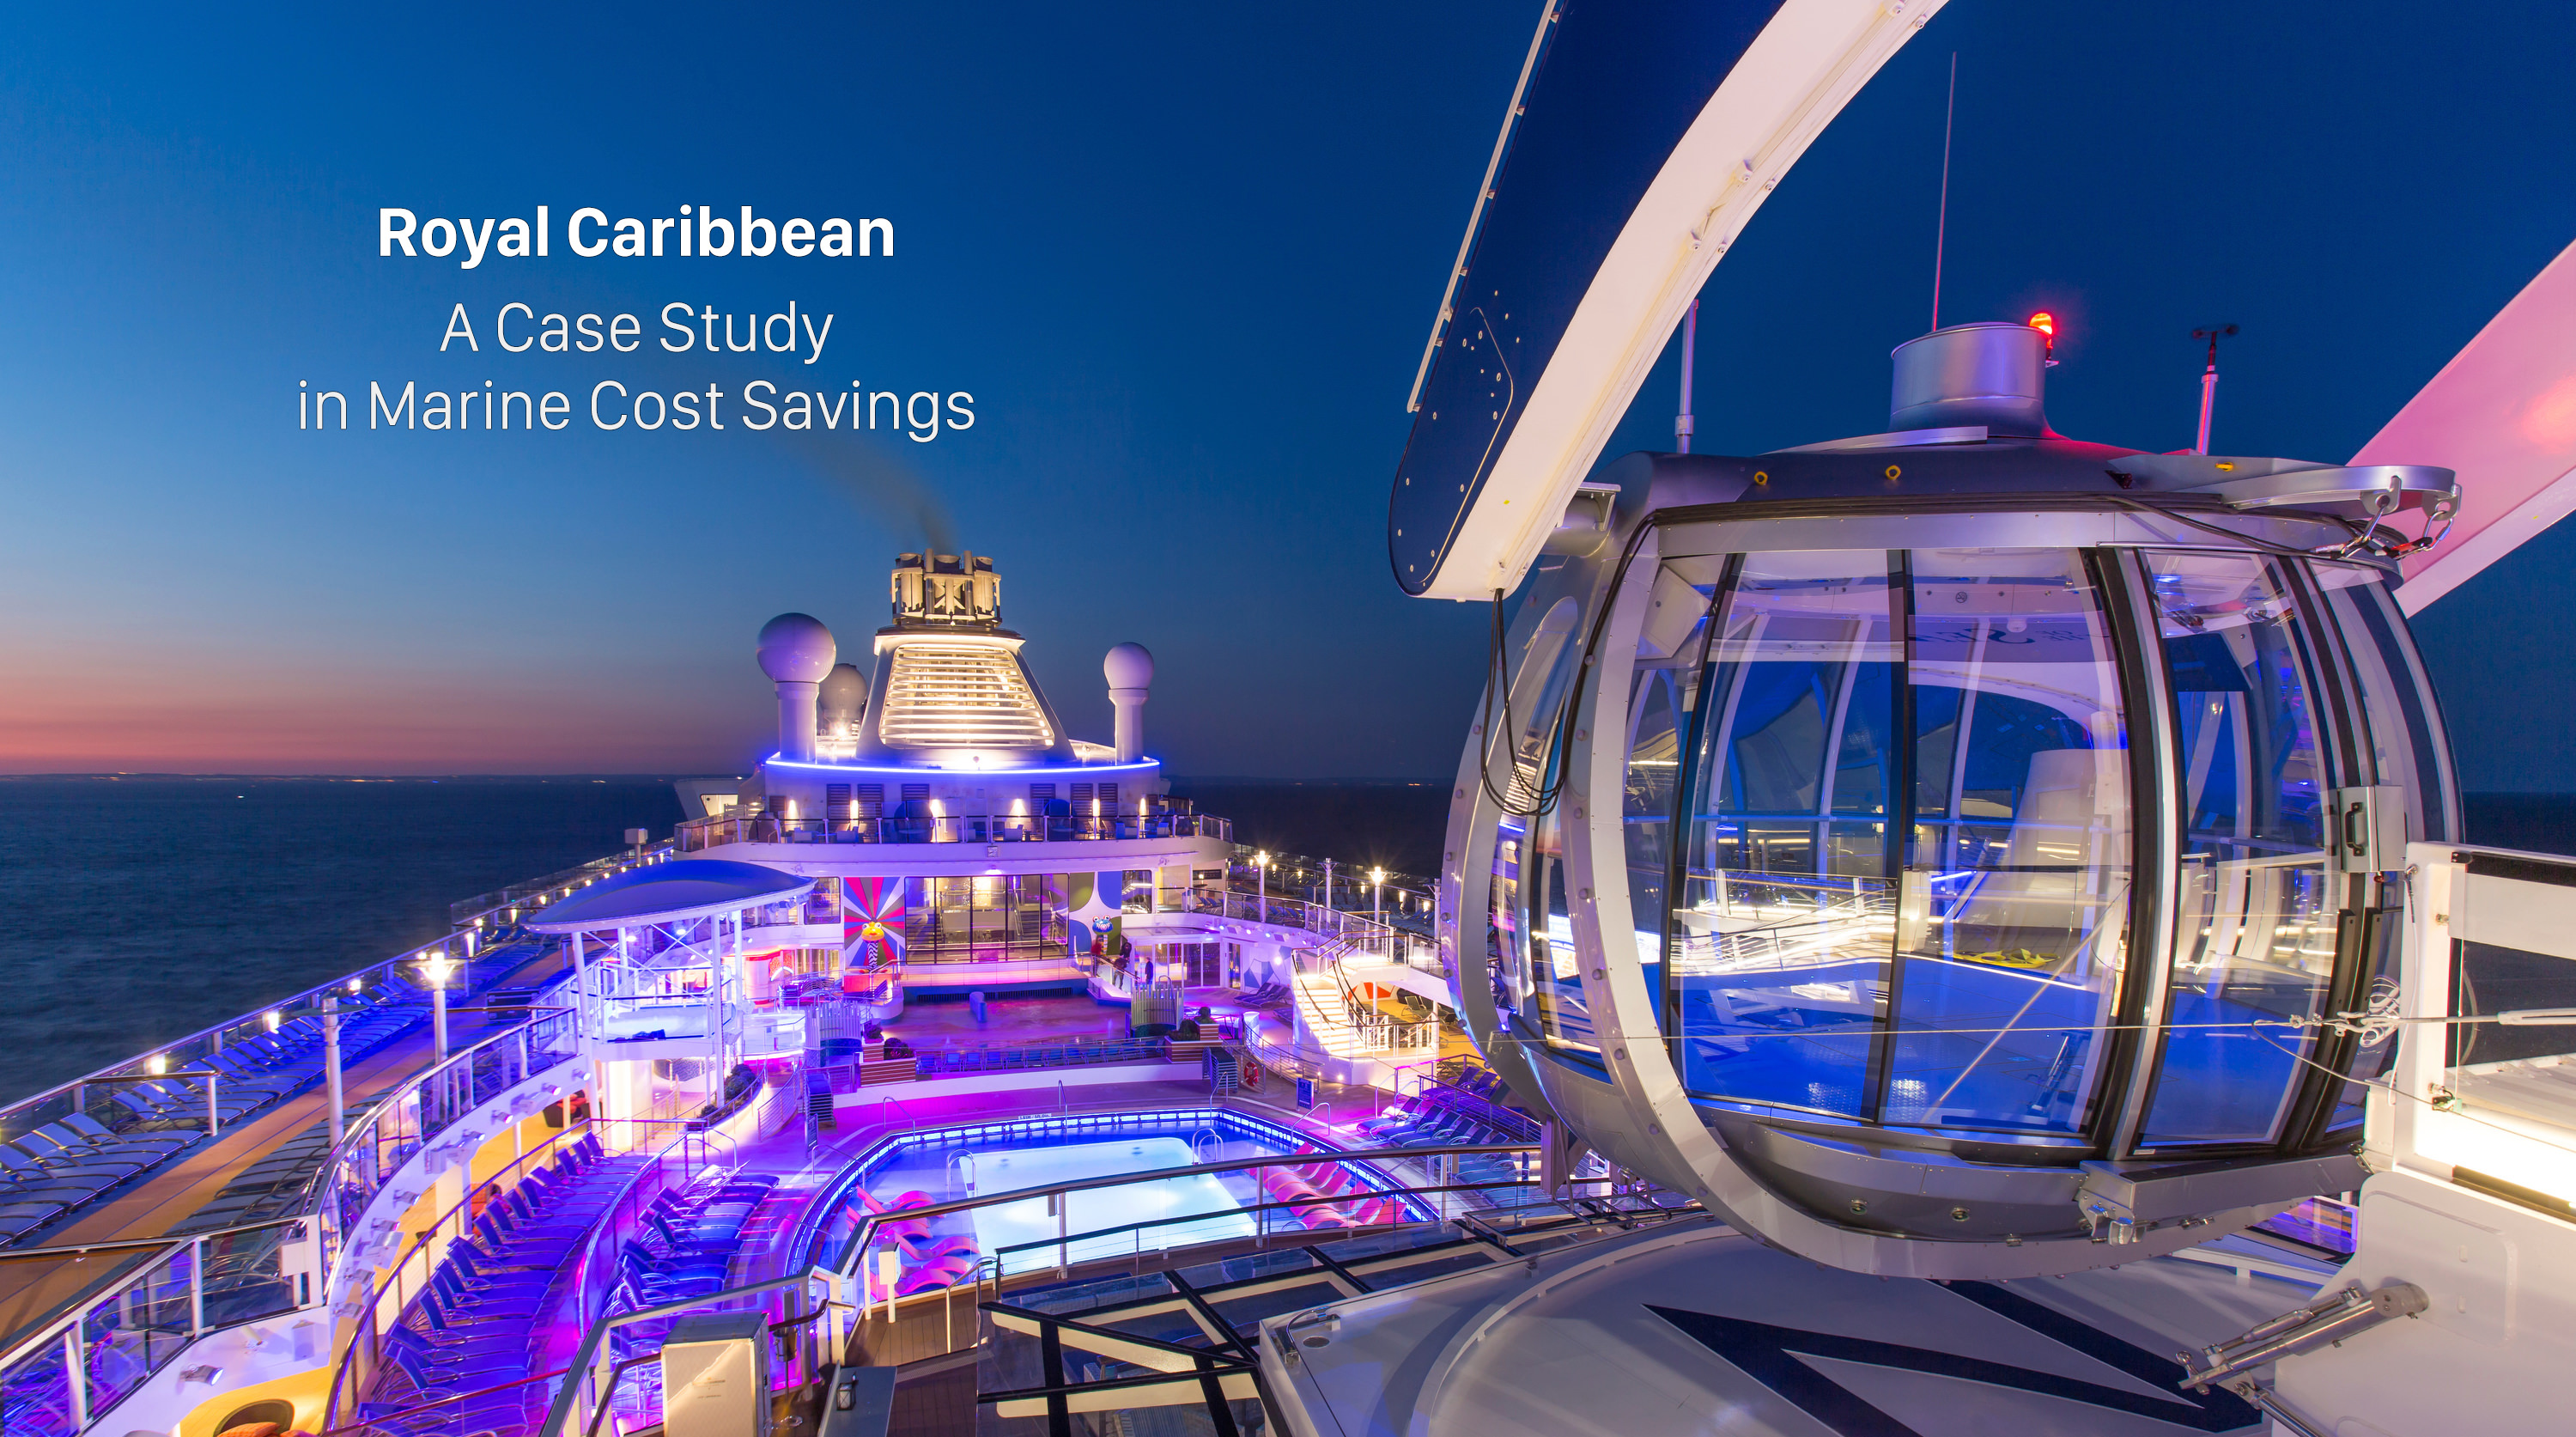 Royal Caribbean Introduces Its Newest And Most Technologically Advanced  Cruise Ship Anthem Of The Seas.  Pool Deck At Sunset